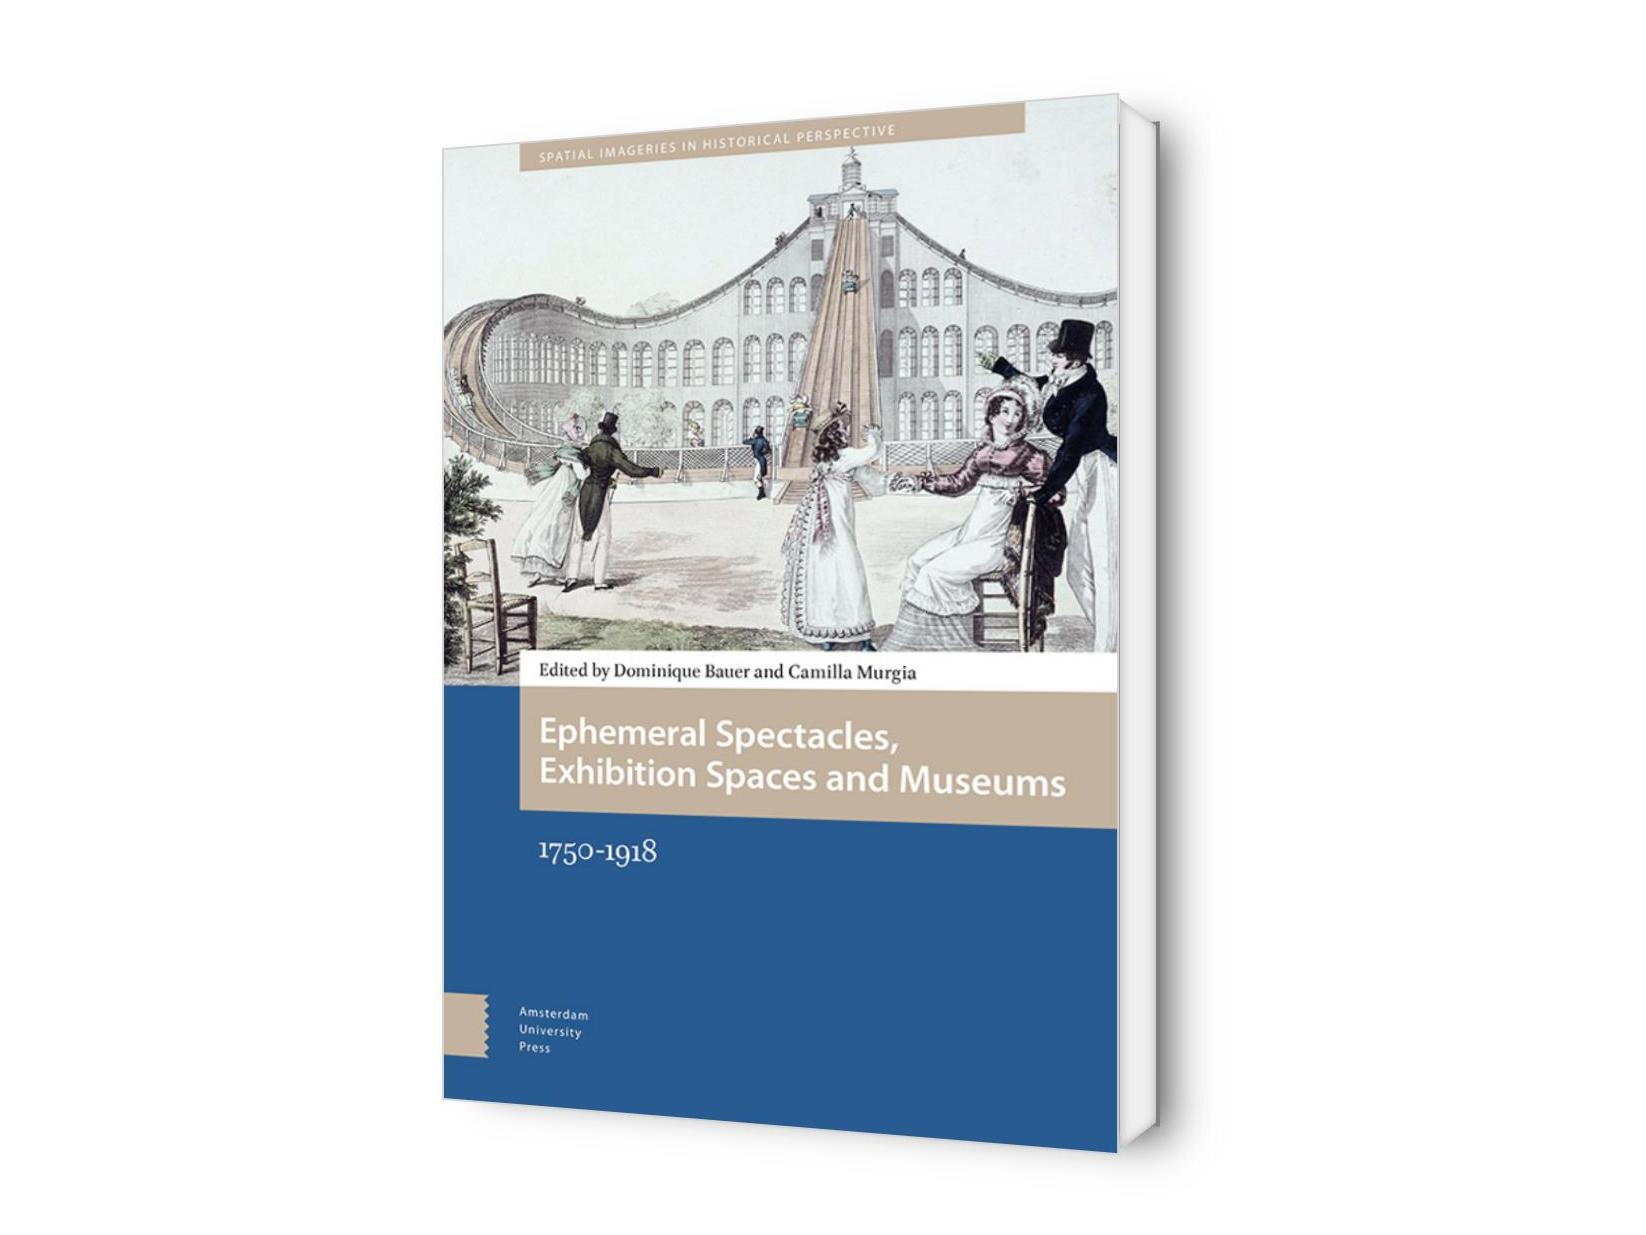 Ephemeral Spectacles, Exhibition Spaces and Museums 1750-1918